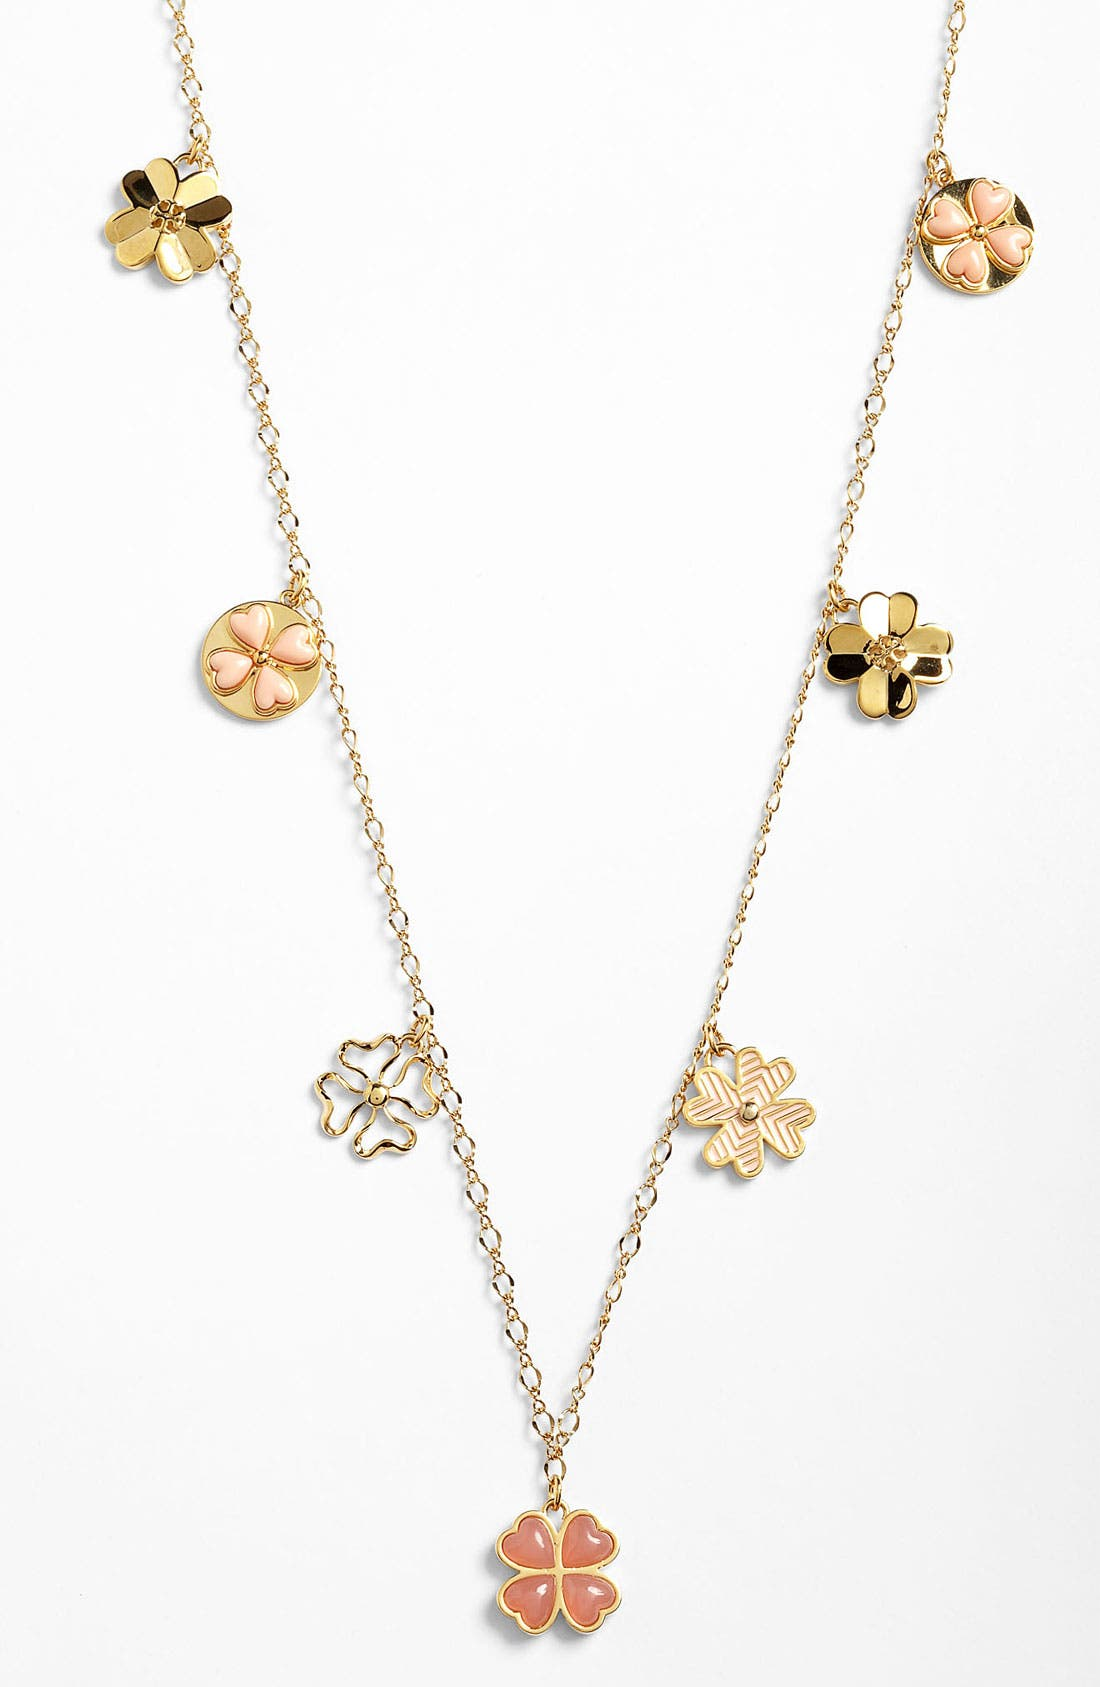 Main Image - Tory Burch 'Shawn' Long Station Necklace